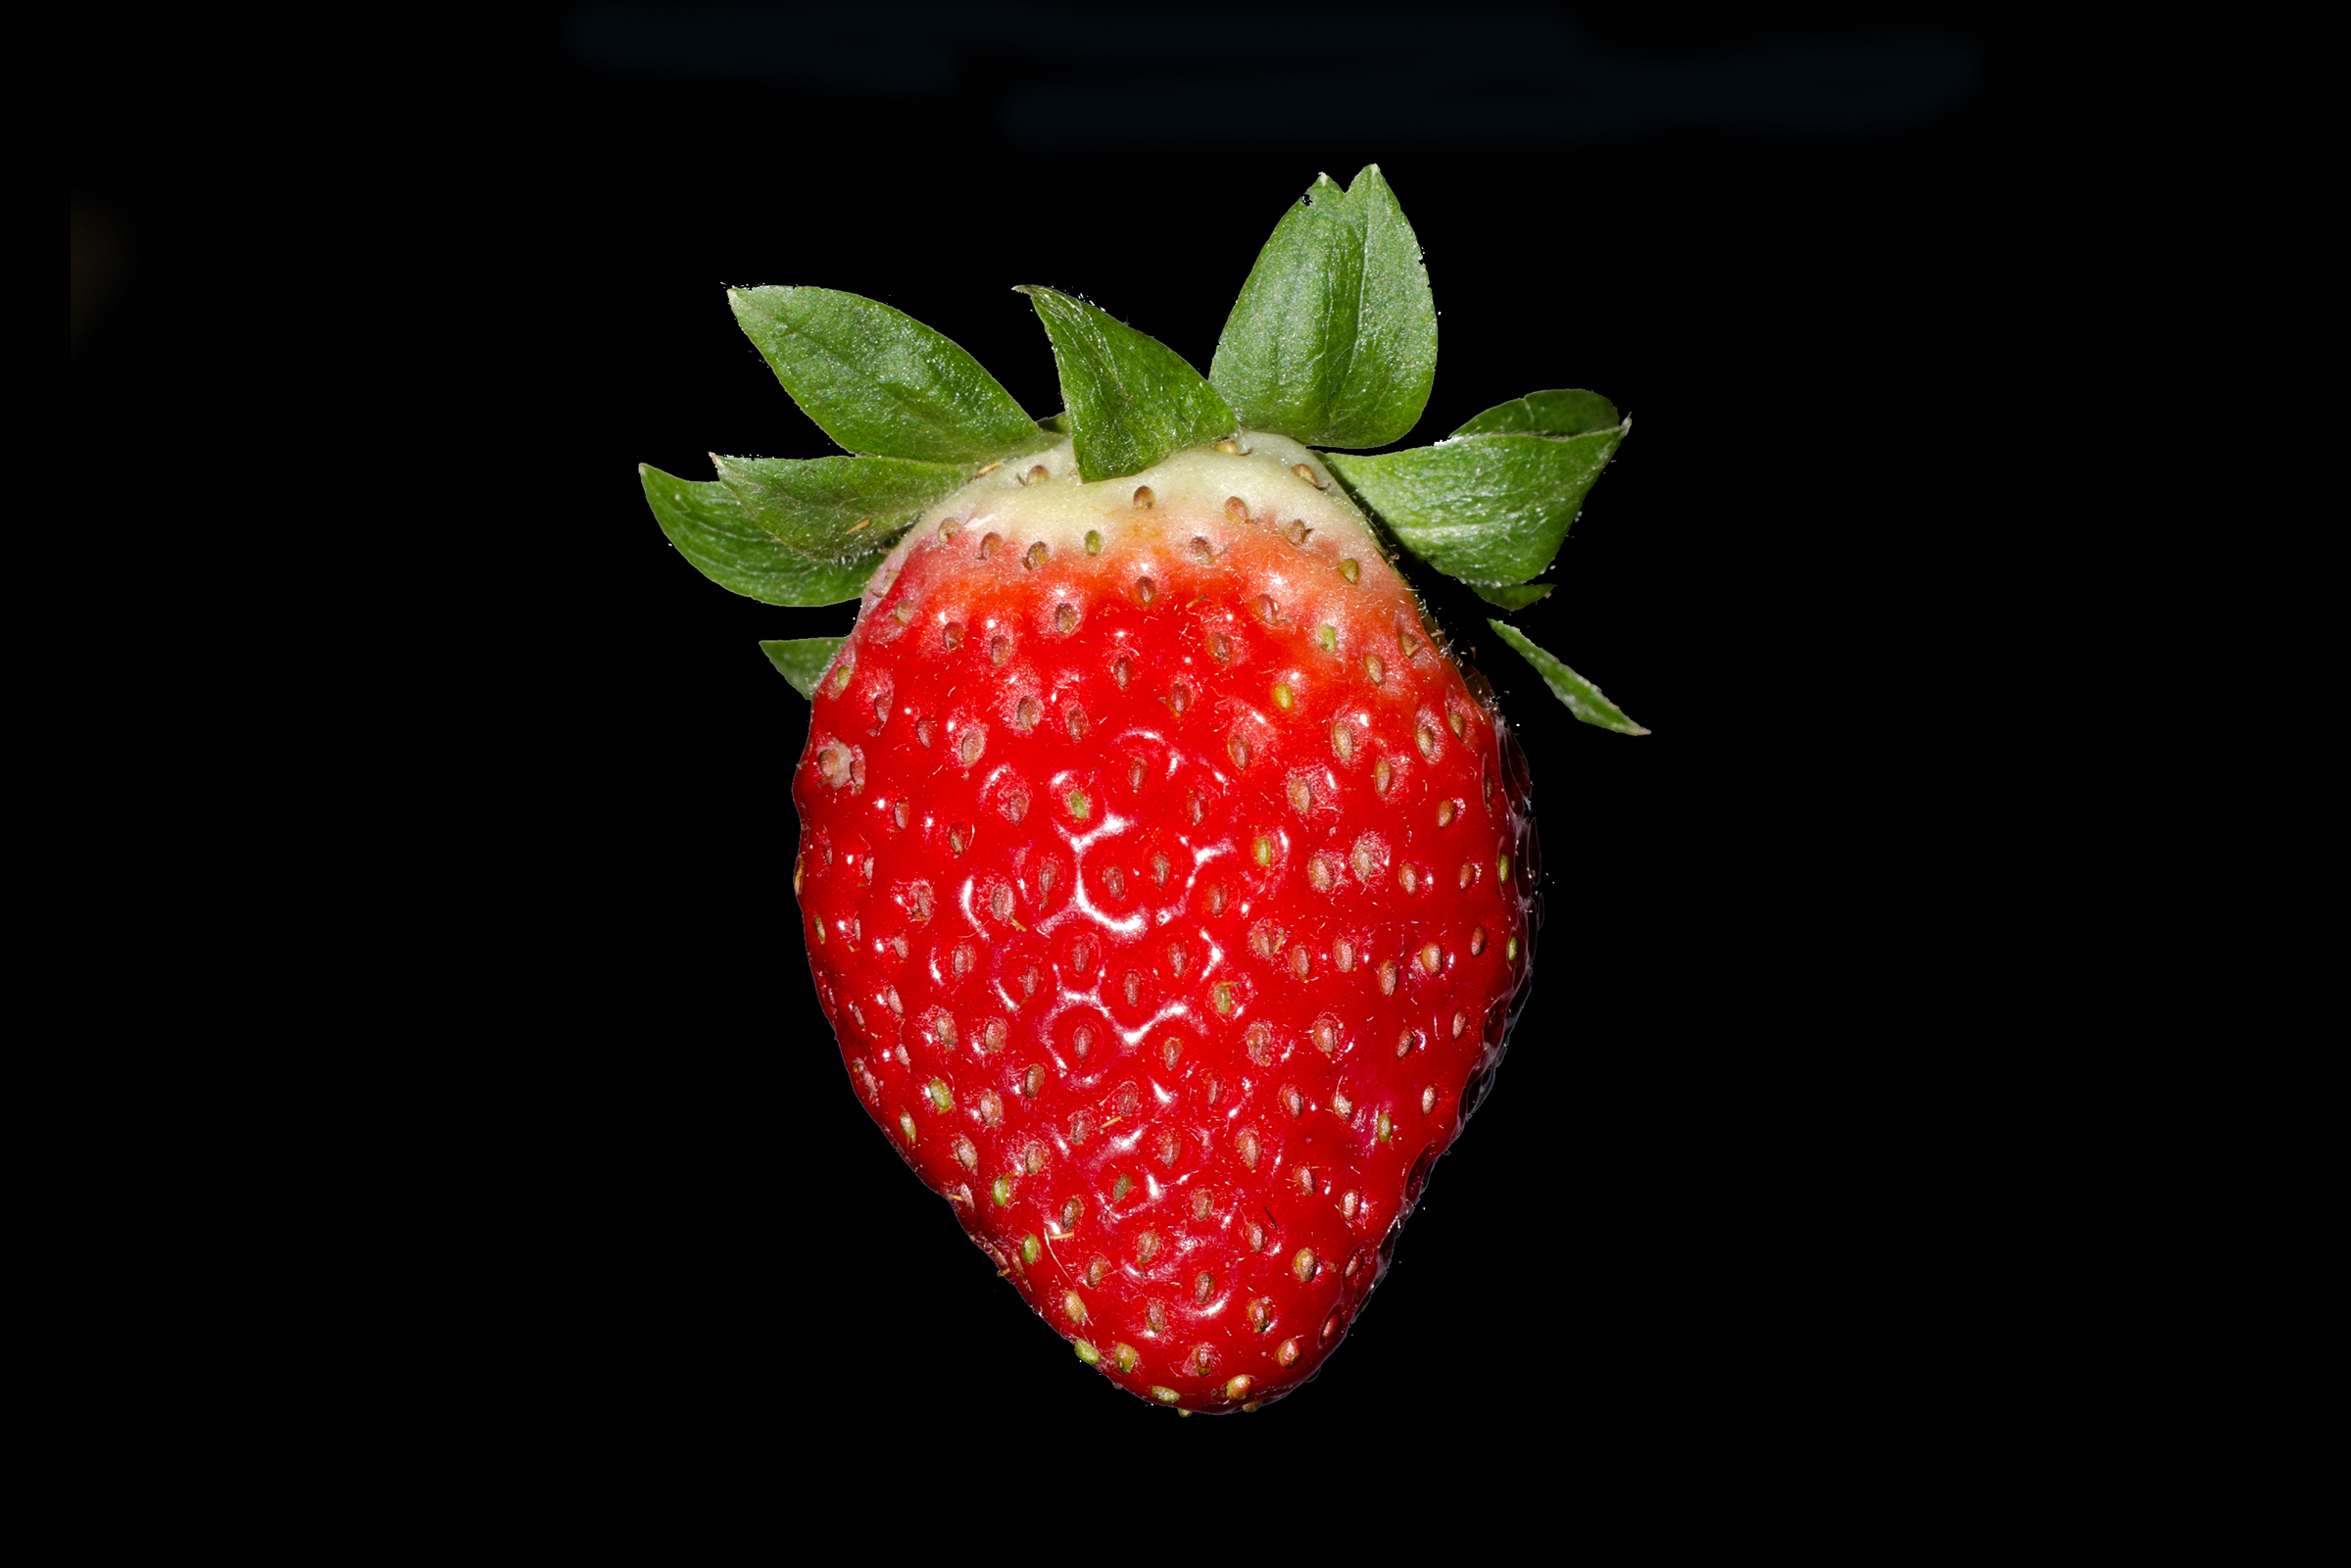 strawberry wikipedia